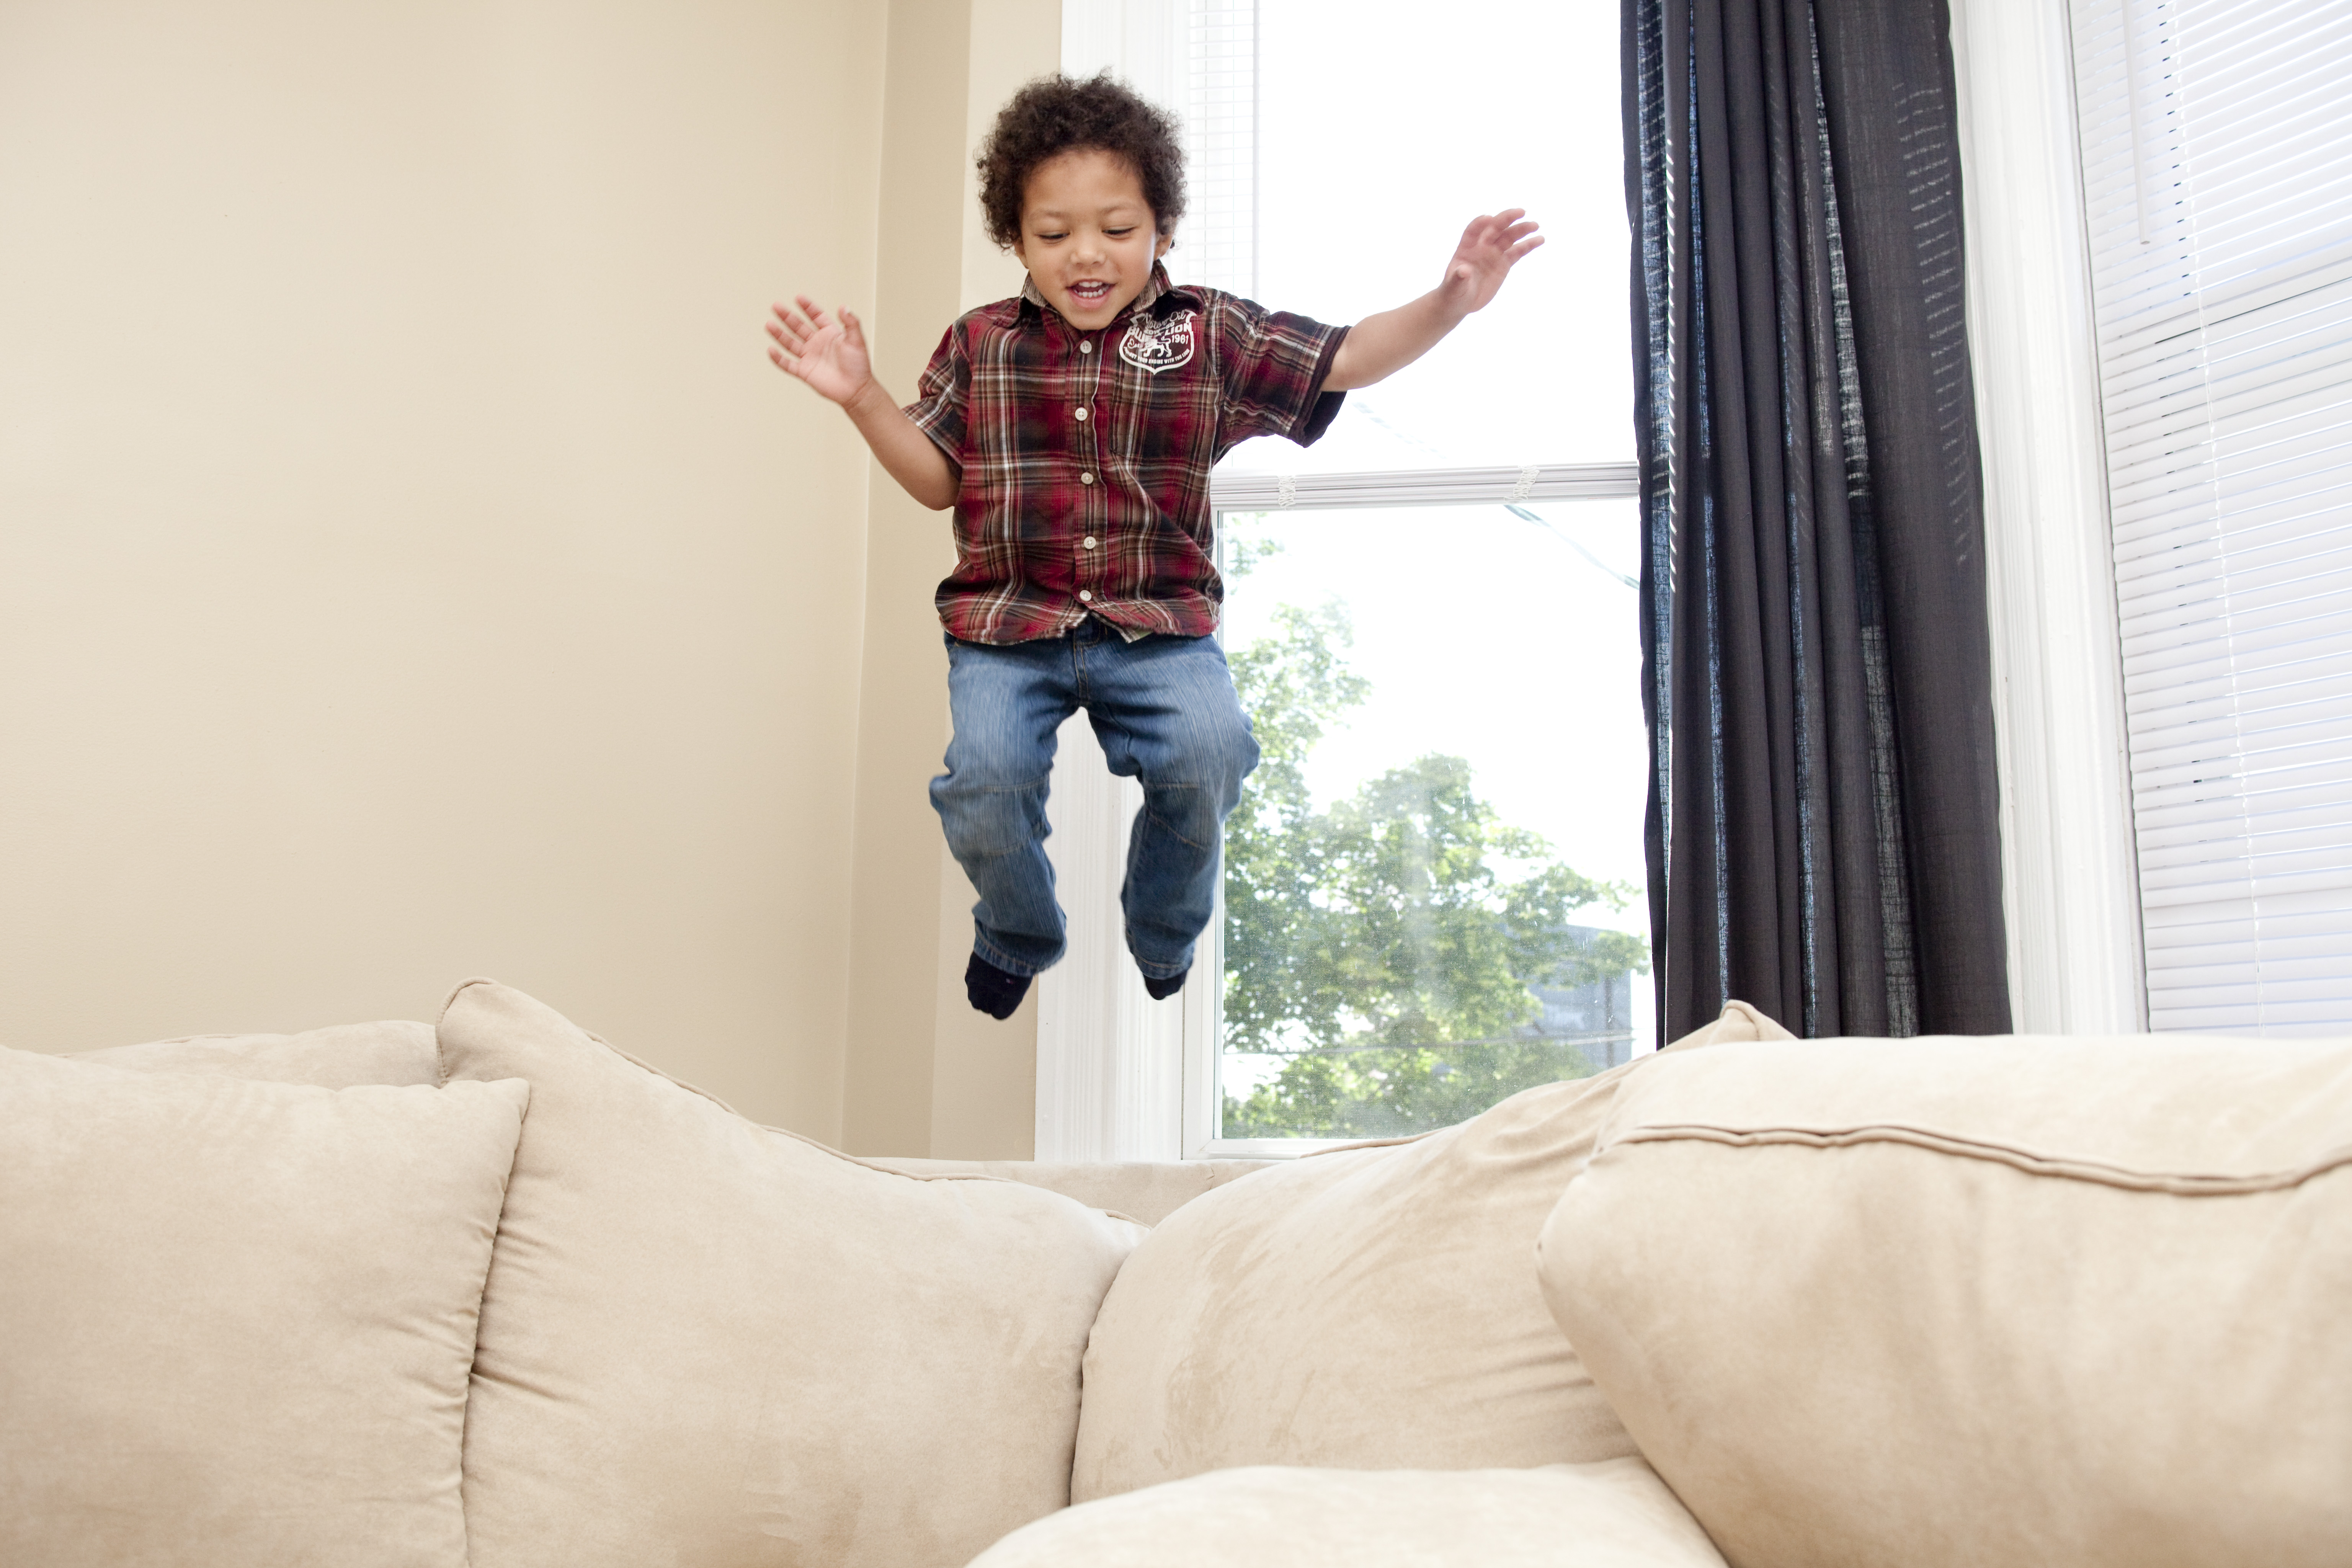 Child jumping on a couch near a window